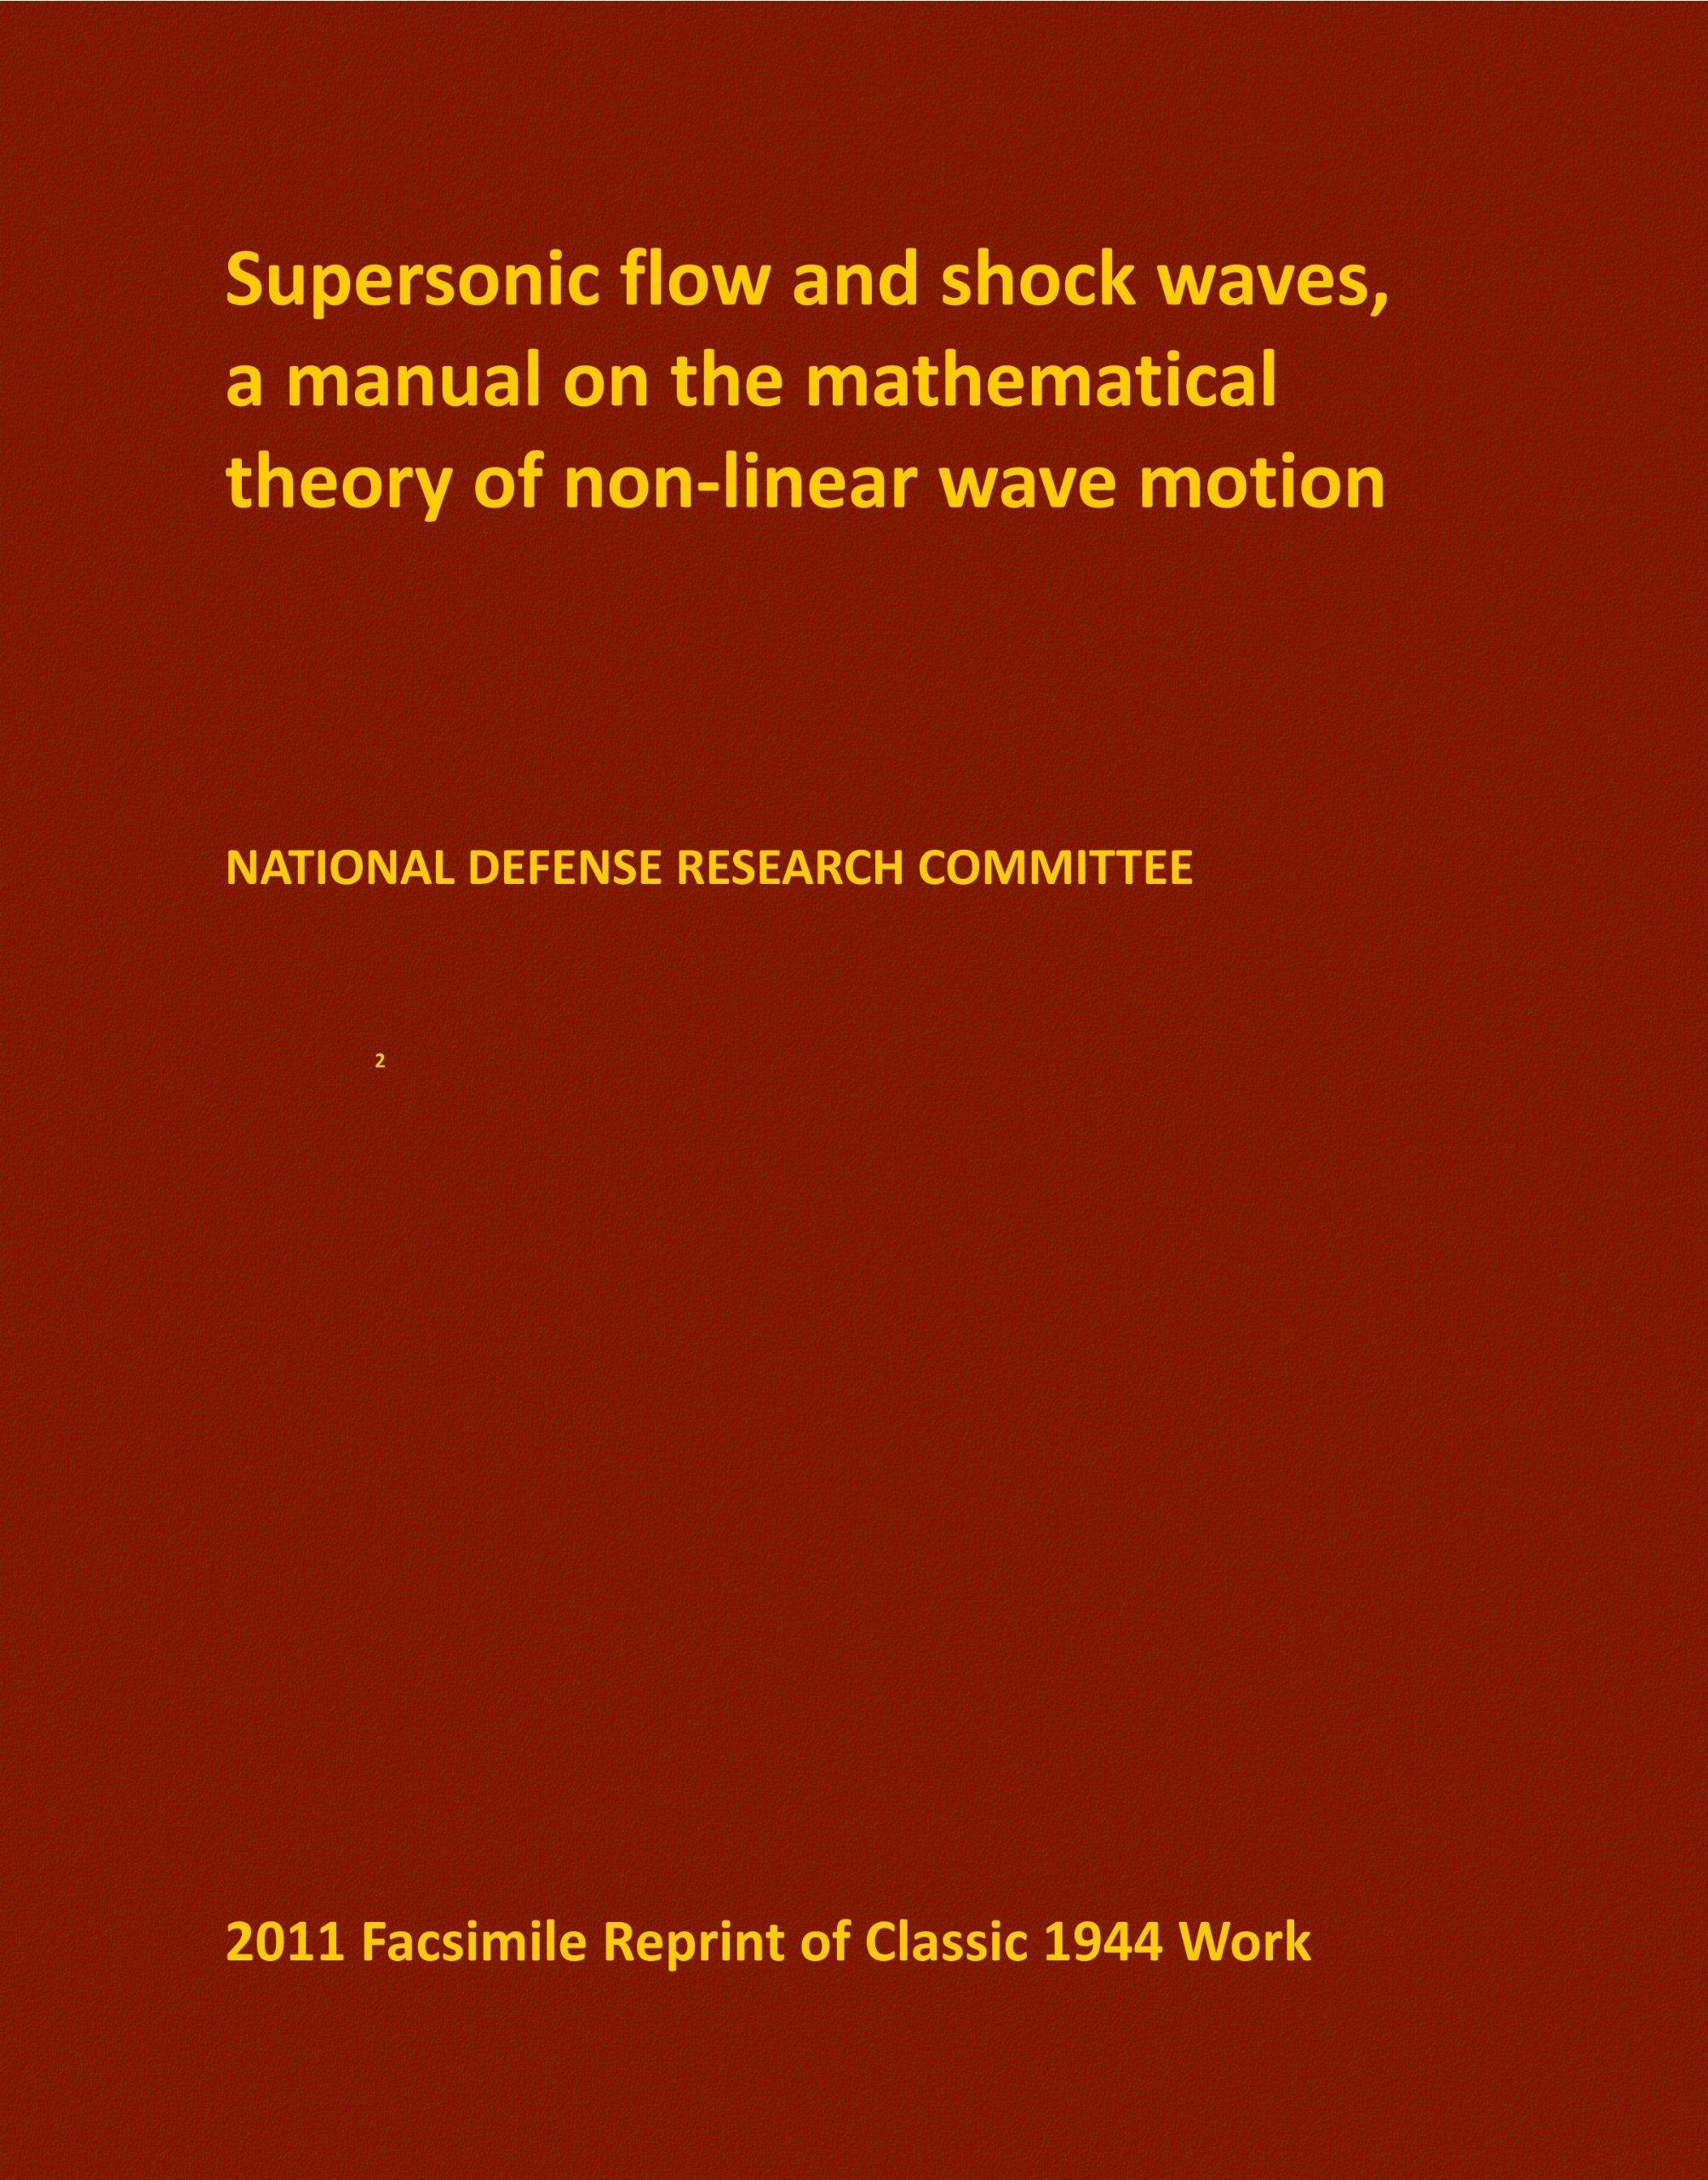 Supersonic flow and shock waves, a manual on the mathematical theory of non-linear wave motion ebook